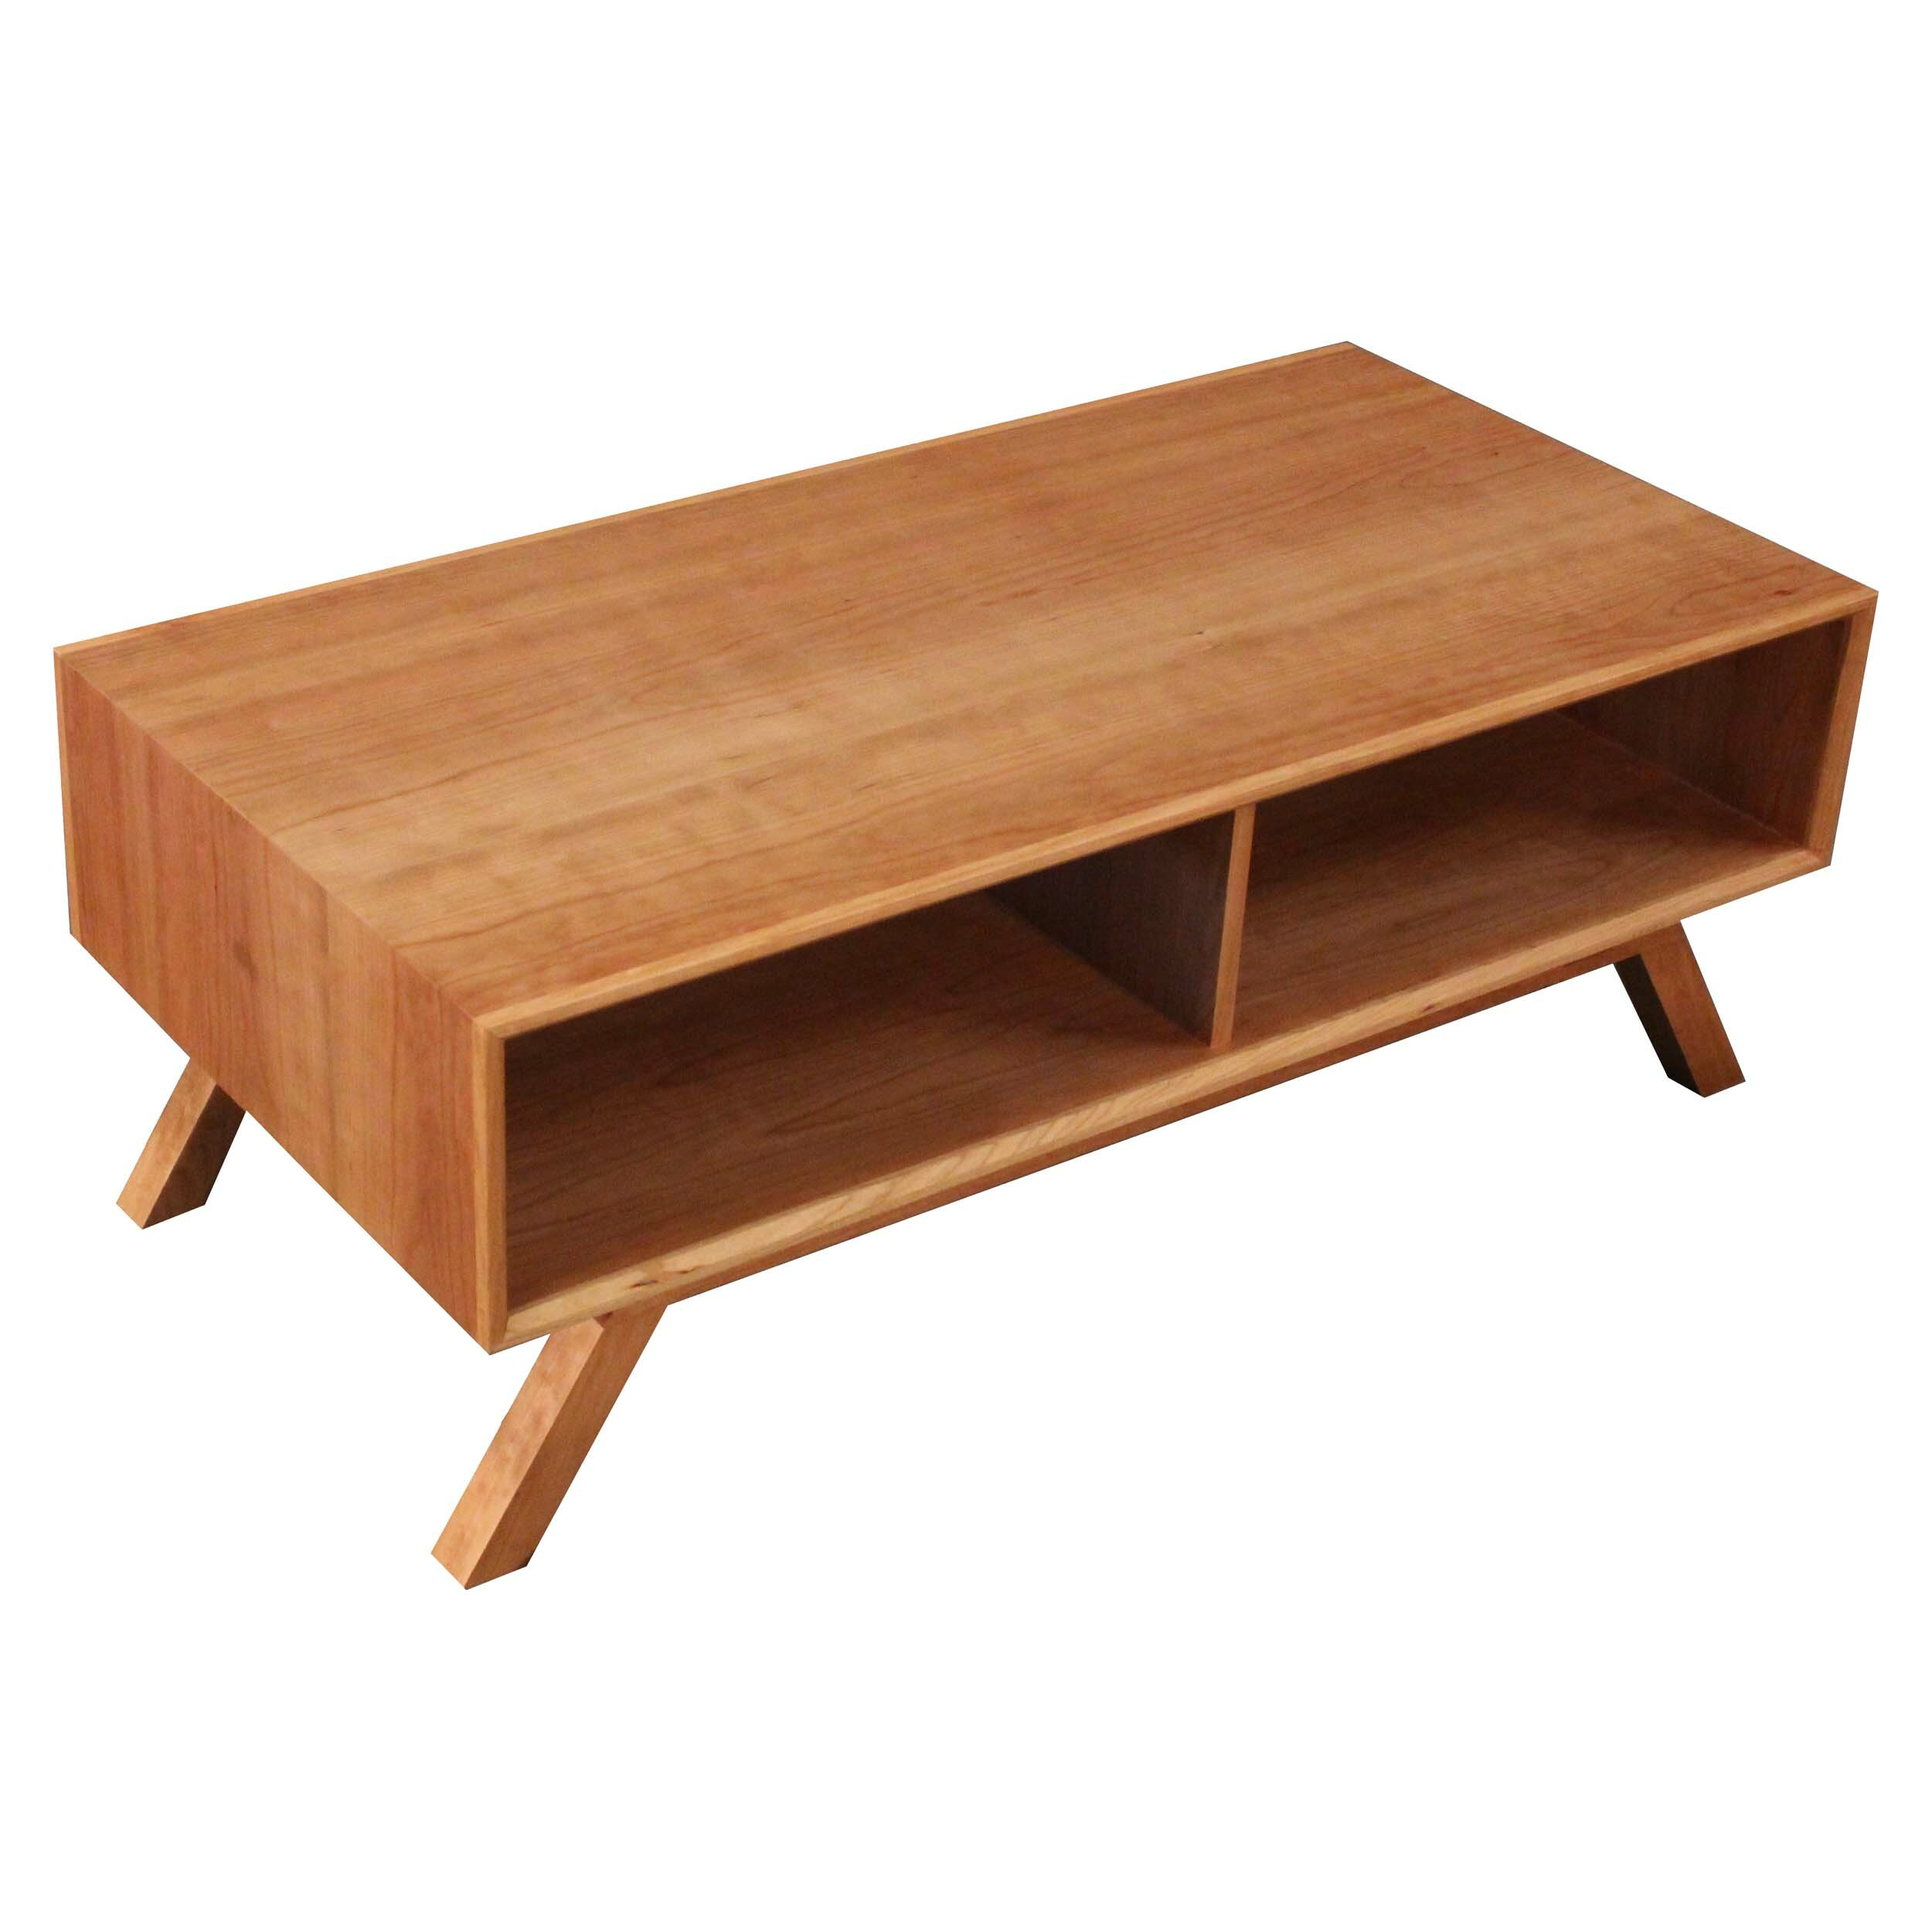 Midcentury coffee table wayfair for Wayfair mid century coffee table